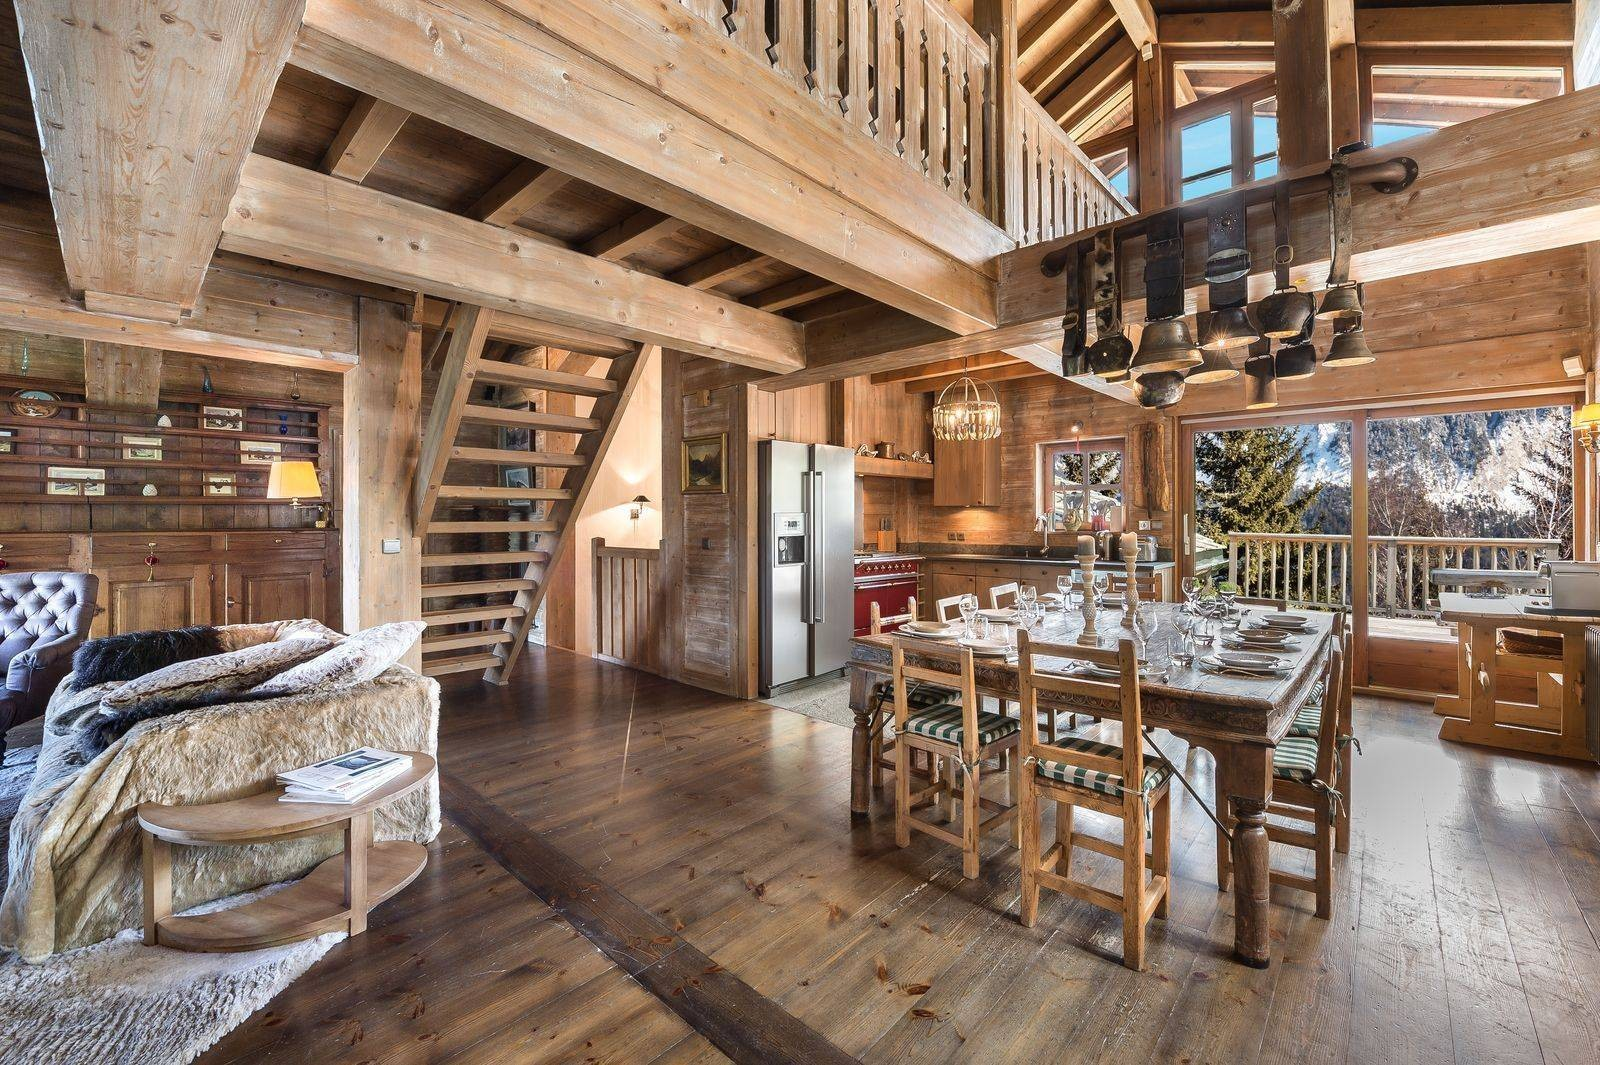 Courchevel 1550 Location Chalet Luxe Tazoy Salle A Manger 2